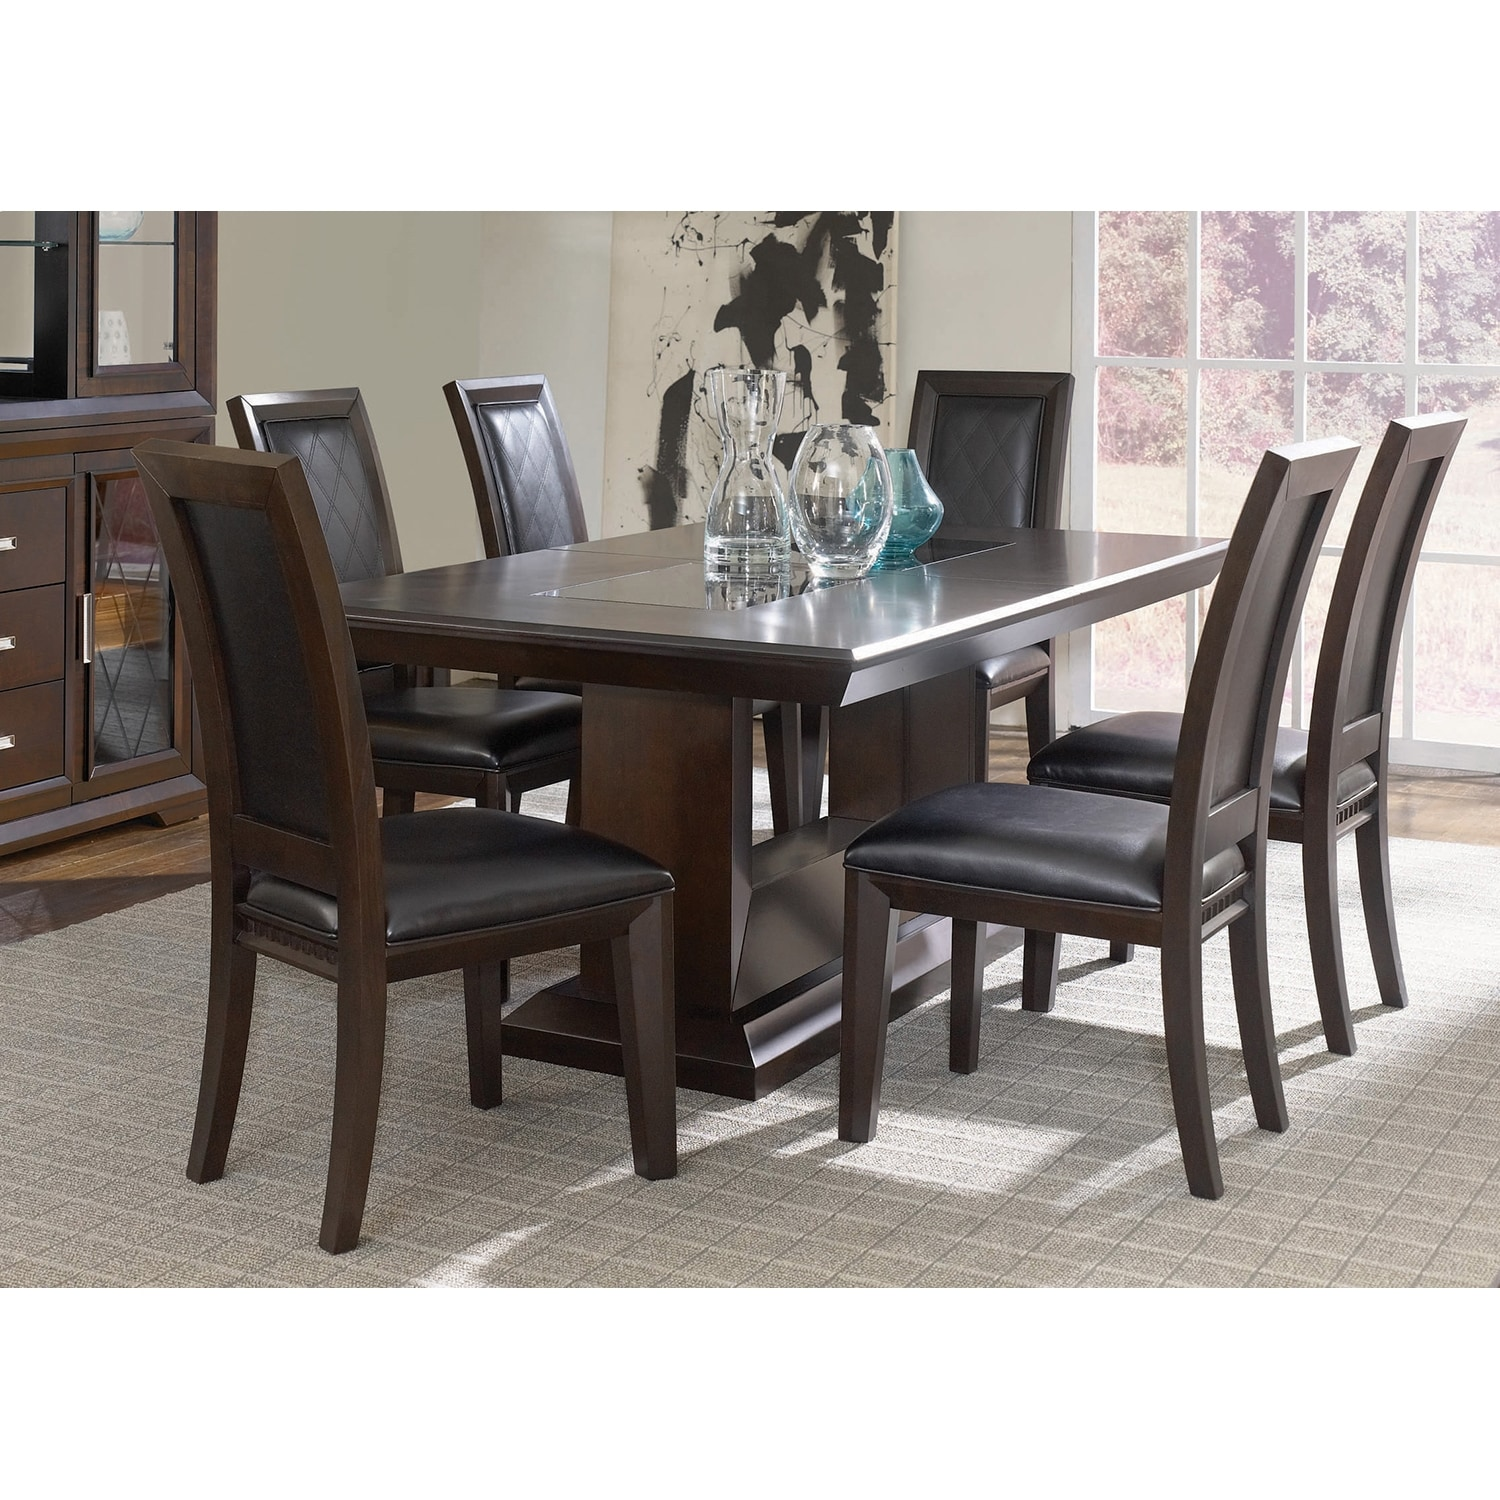 Brentwood 5 Piece Dining Package